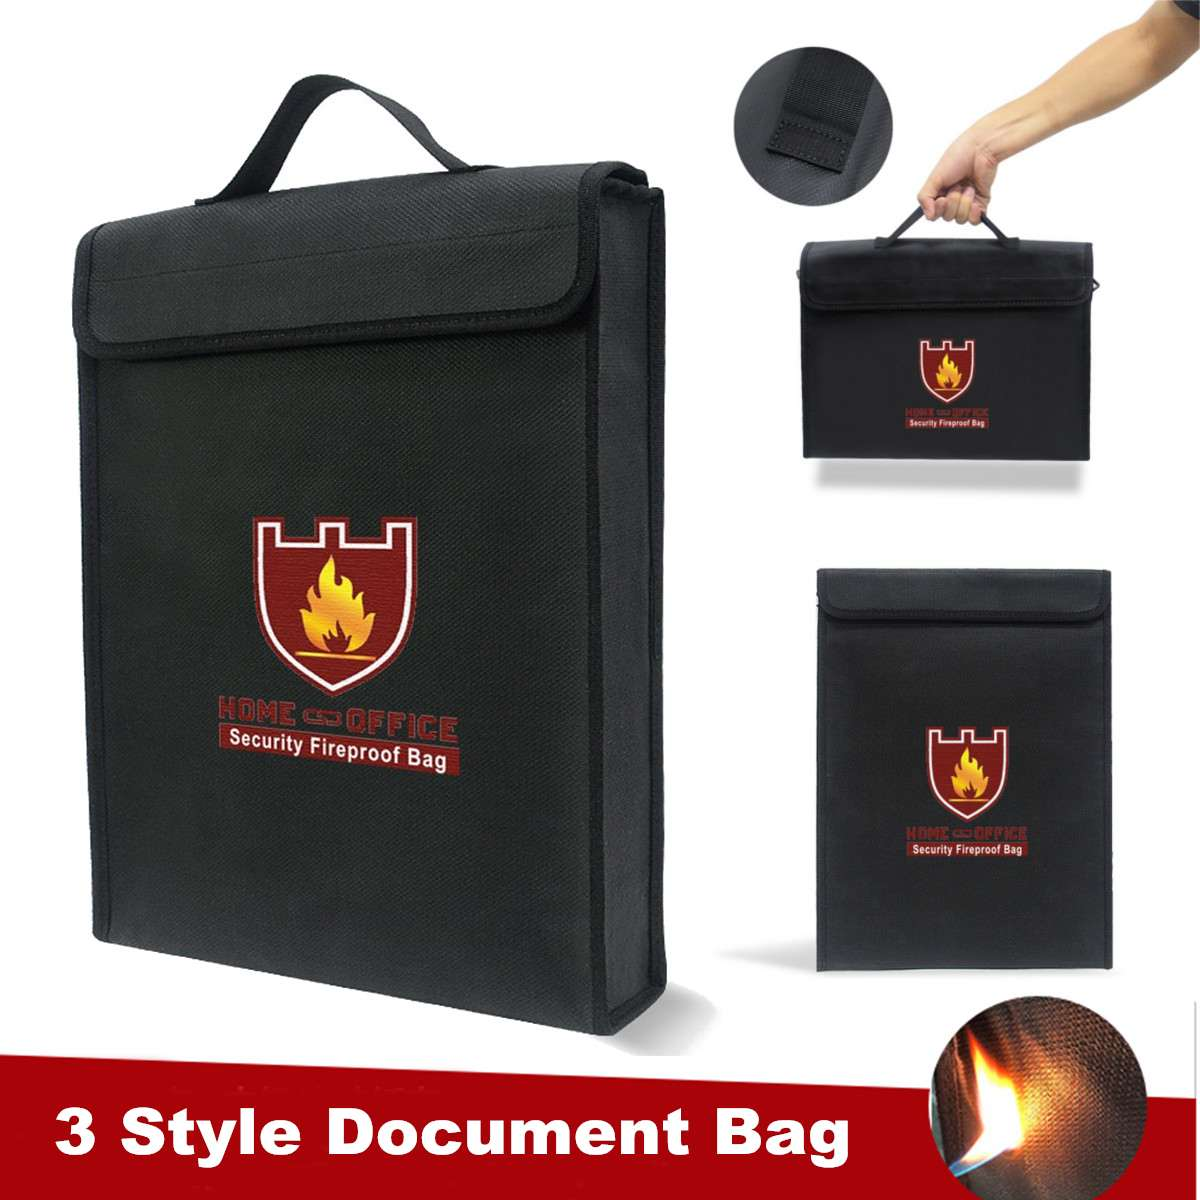 Waterproof Fireproof Document Bag Protection Cash Money File Passport Pouch Briefcase Envelope Home Office Supplies 3 Sizes